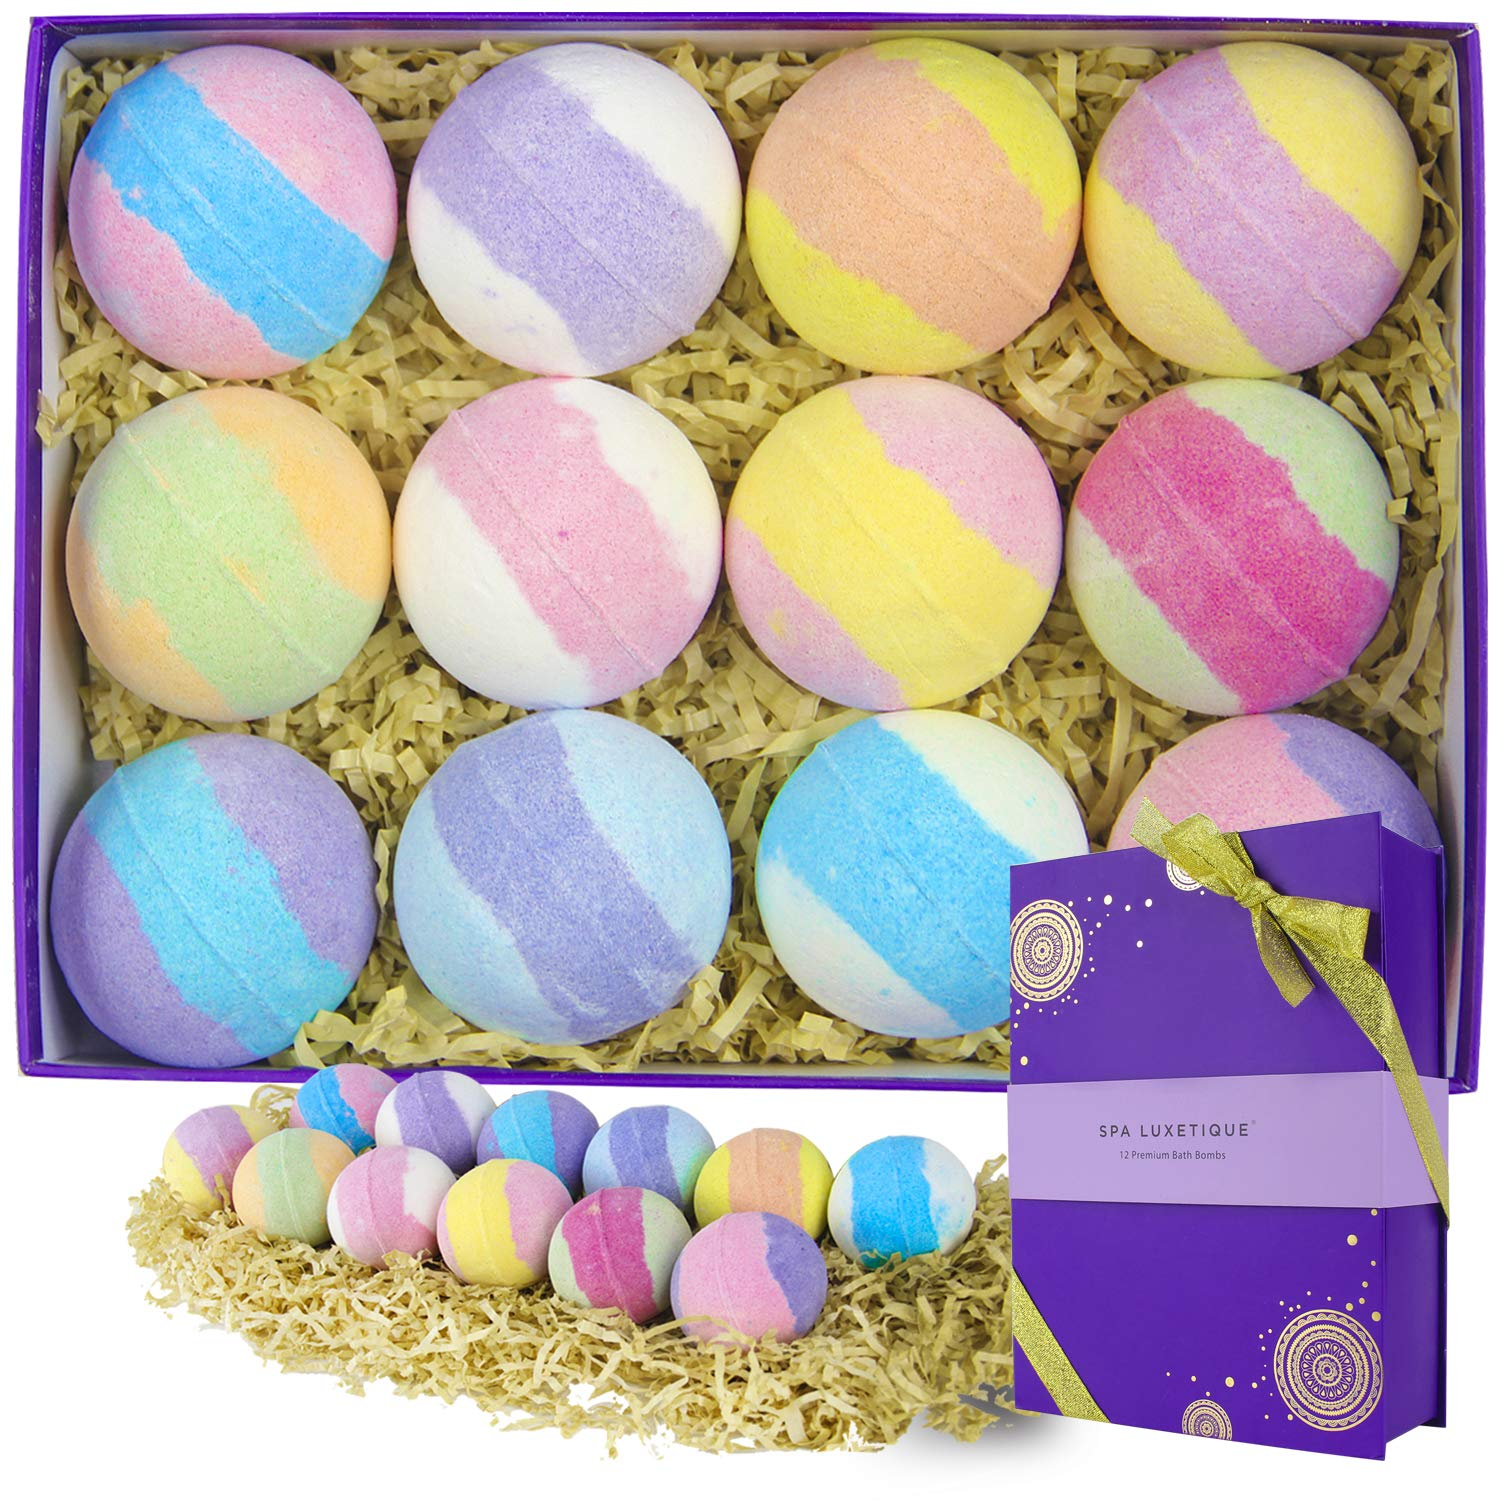 Spa Luxetique Bath Bombs Gift Set (12X3.2oz), Handmade Bubble Bath Gift Set, Natural Bubble Fizzes Spa Kit with Vegan Shea & Cocoa Butter Dry Skin Moisturize. Birthday, Christmas Gifts for Women.